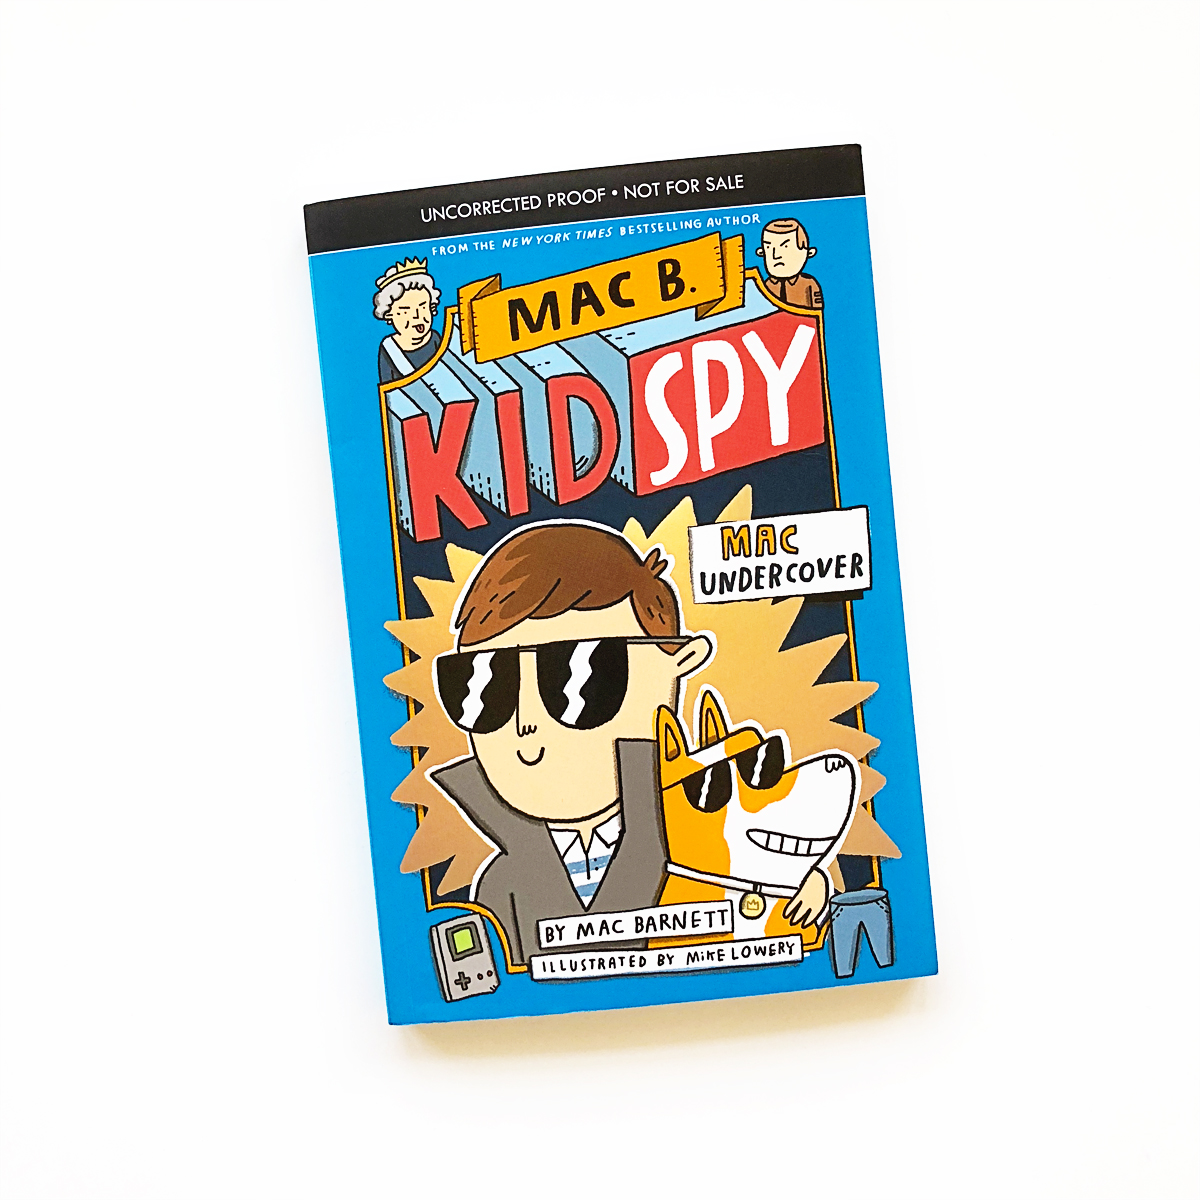 Mac B., Kid Spy #1: Mac Undercover | Avery and Augustine